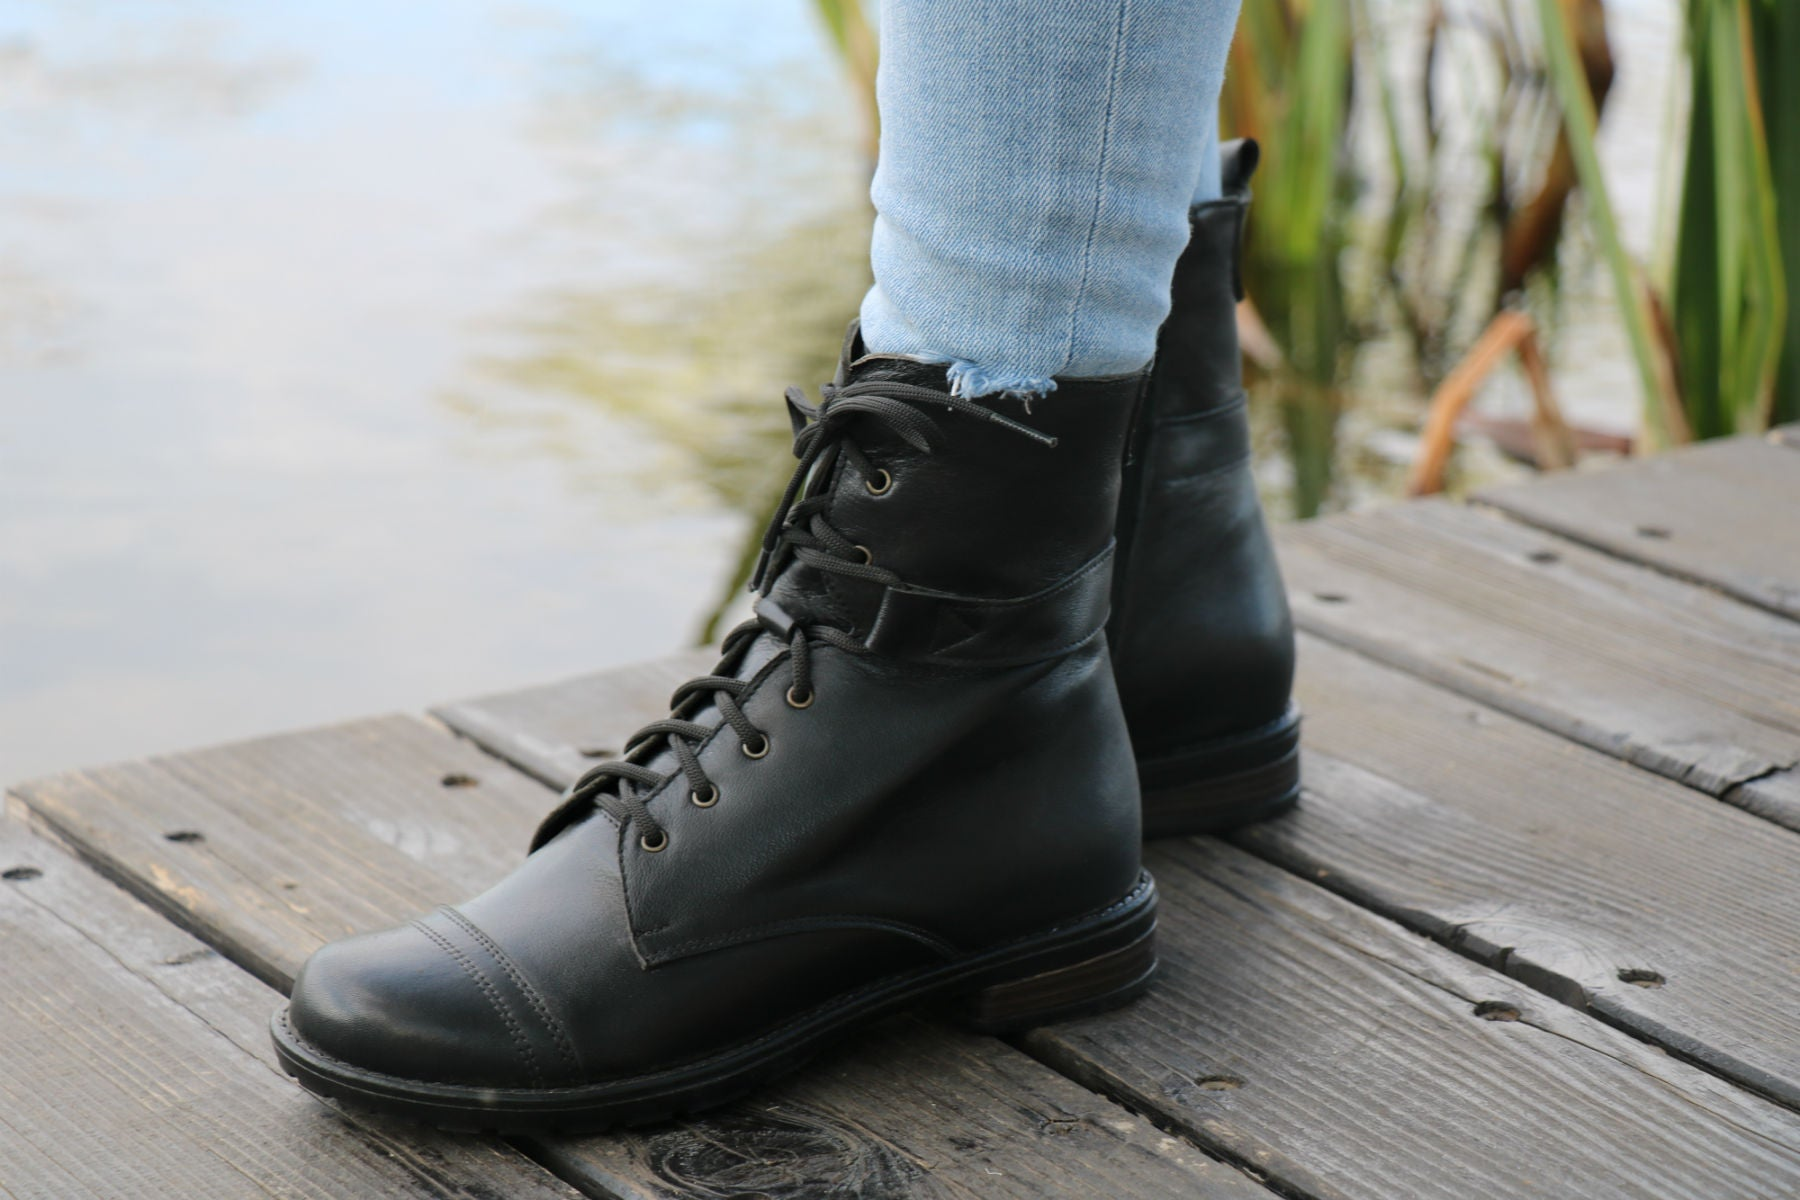 f2ba9a47d83ca Handmade Lace Up Leather Boots